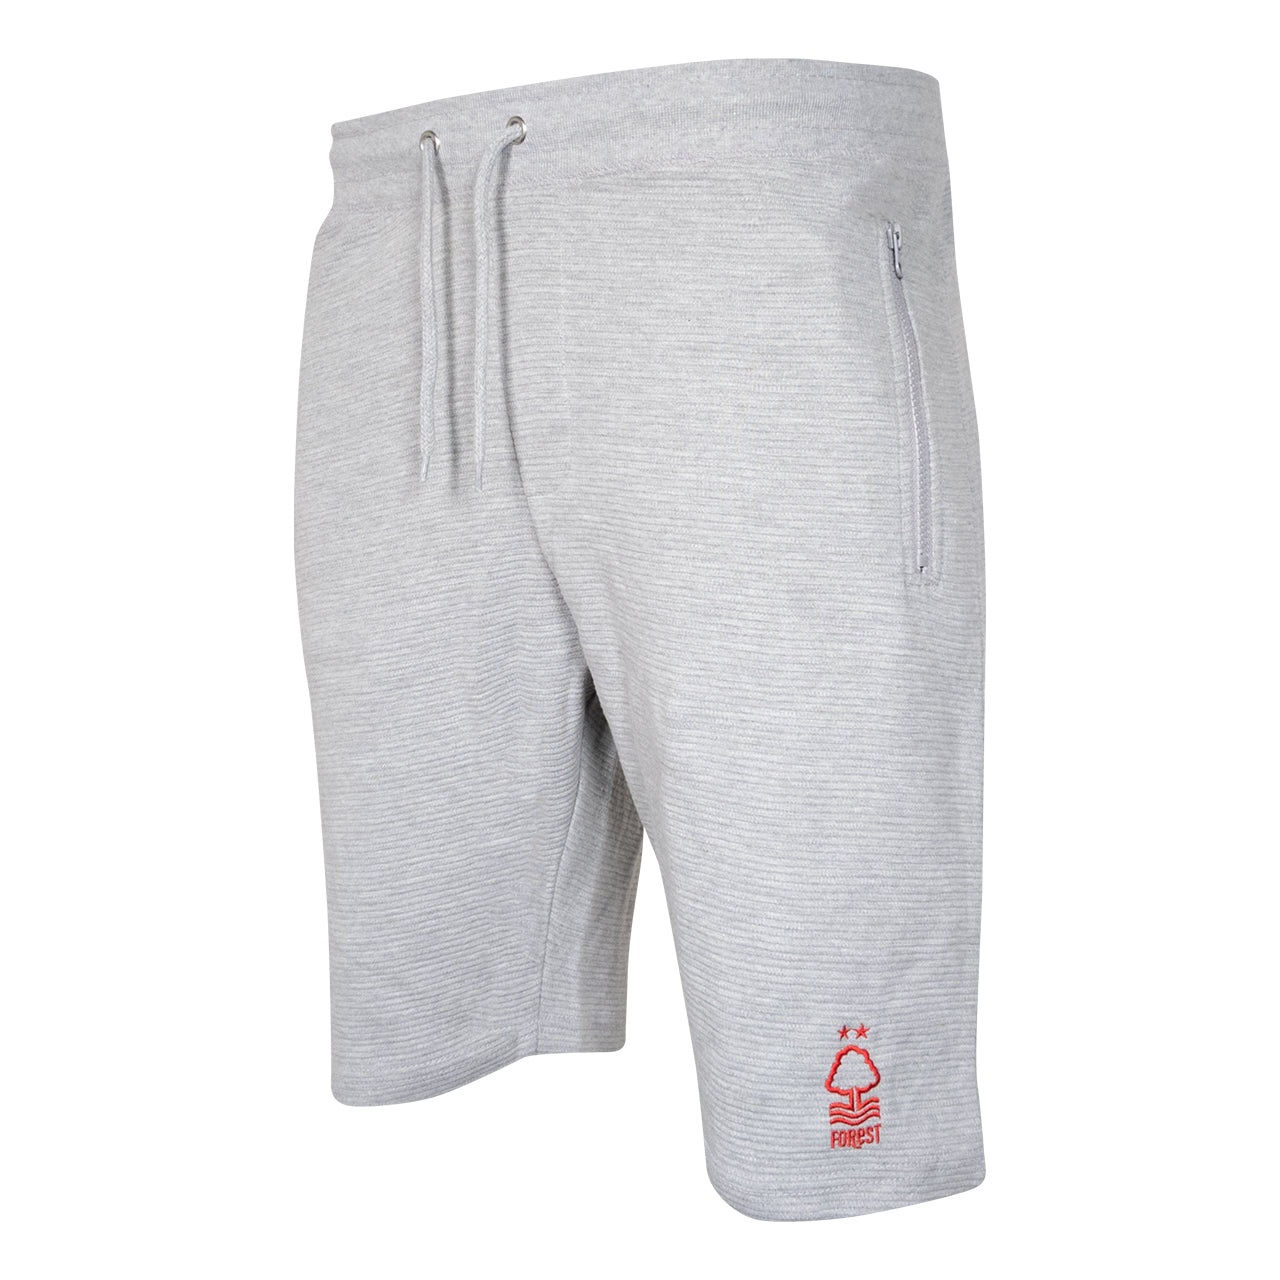 NFFC Men's Grey Gino Sweat Shorts